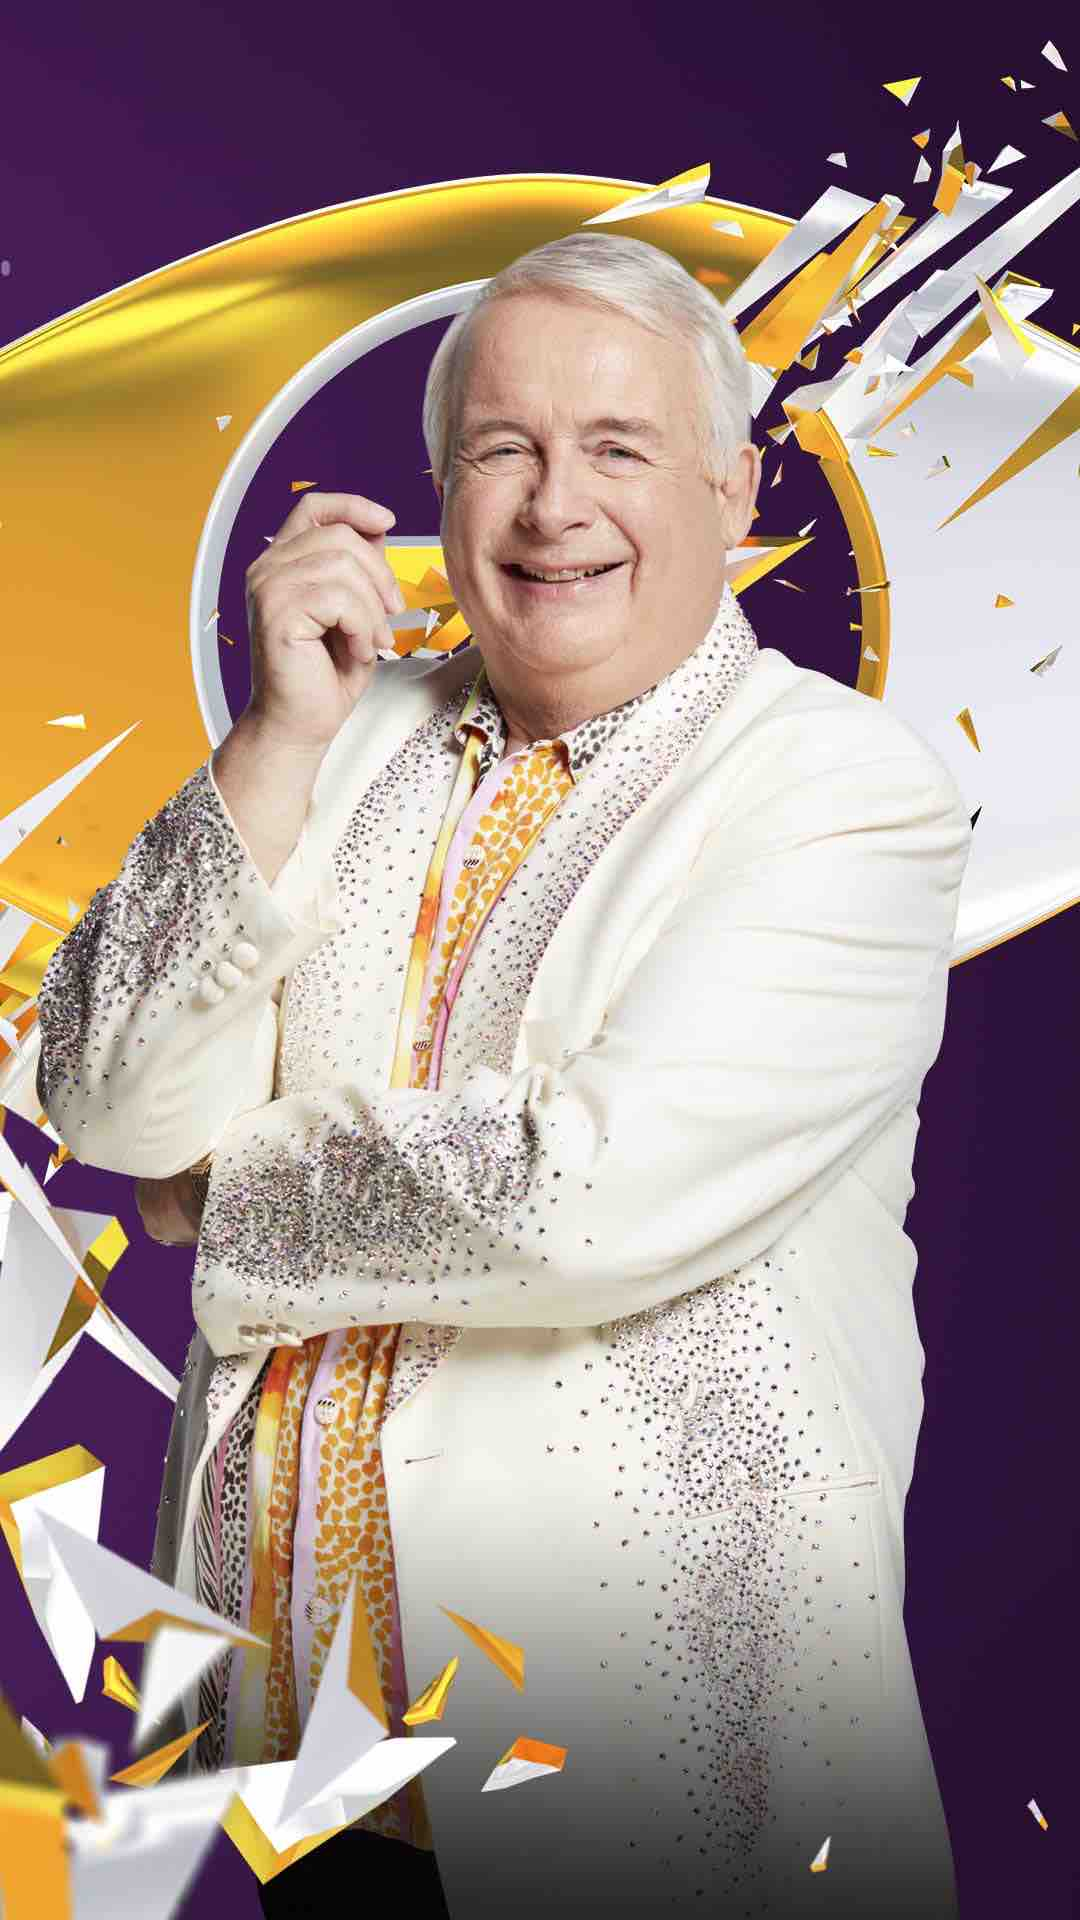 CBB_ChristopherBiggins